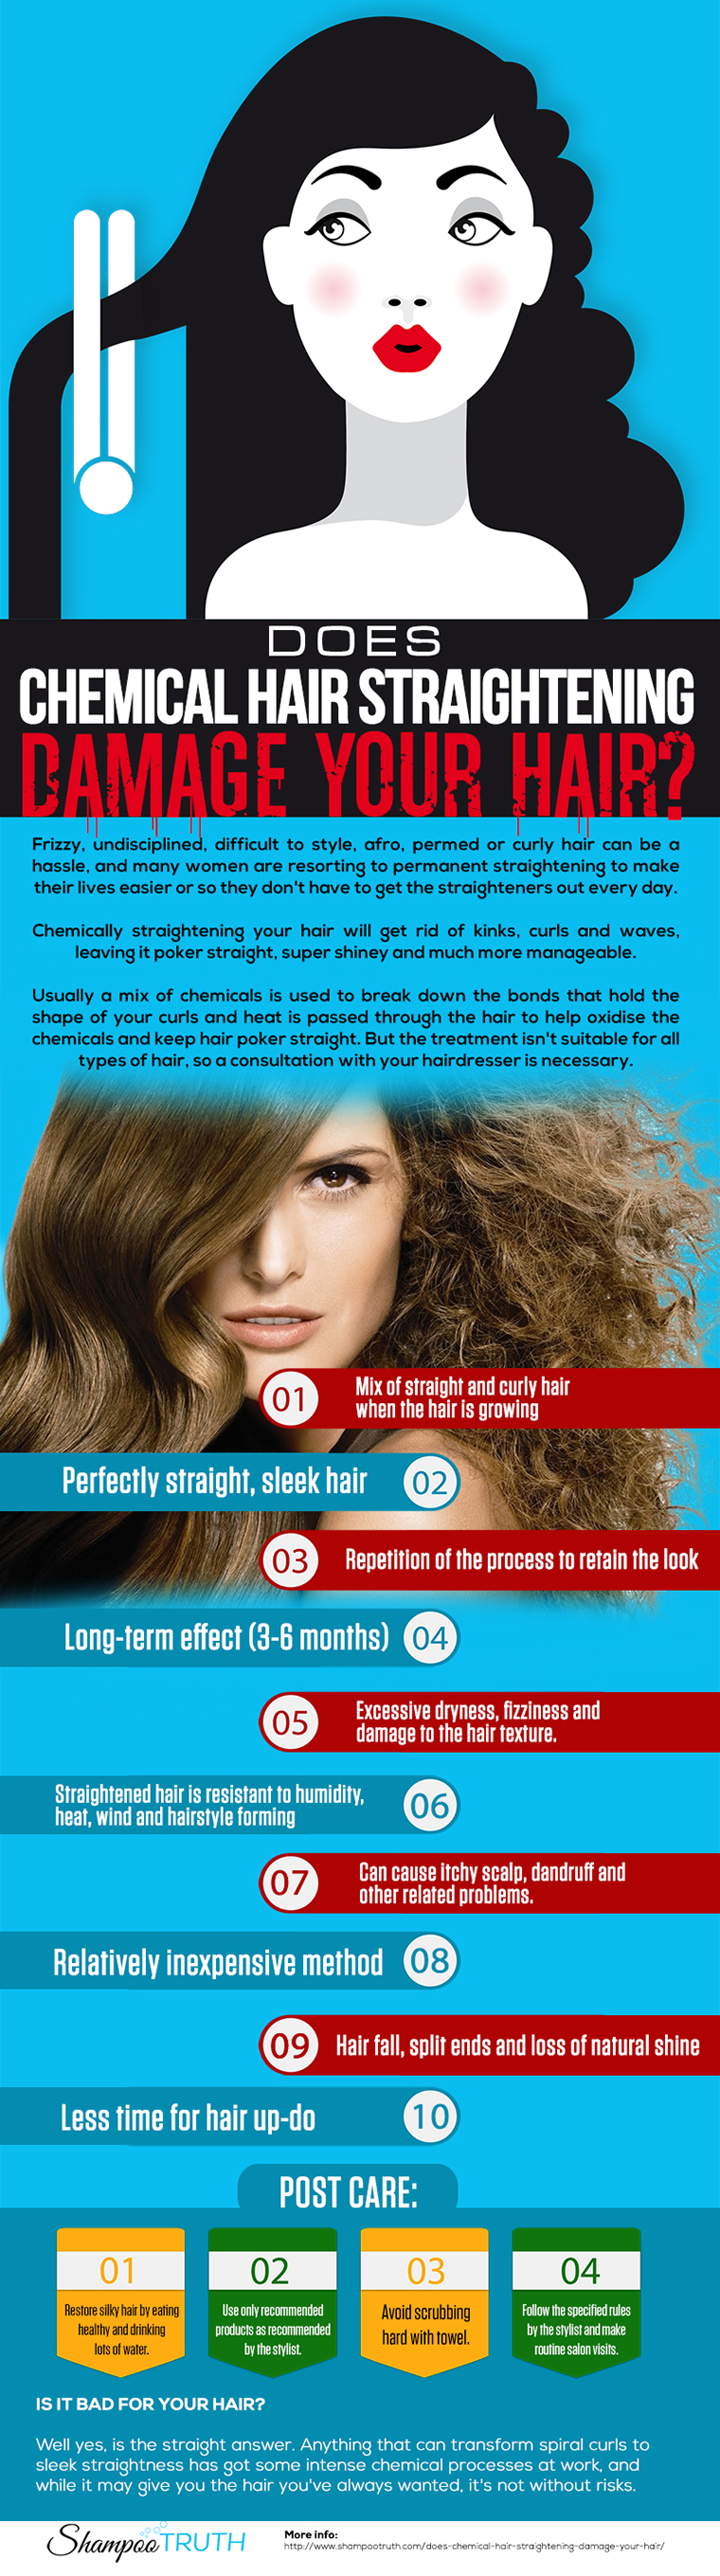 Does Chemical Hair Straightening Damage Your Hair Shampoo Truth